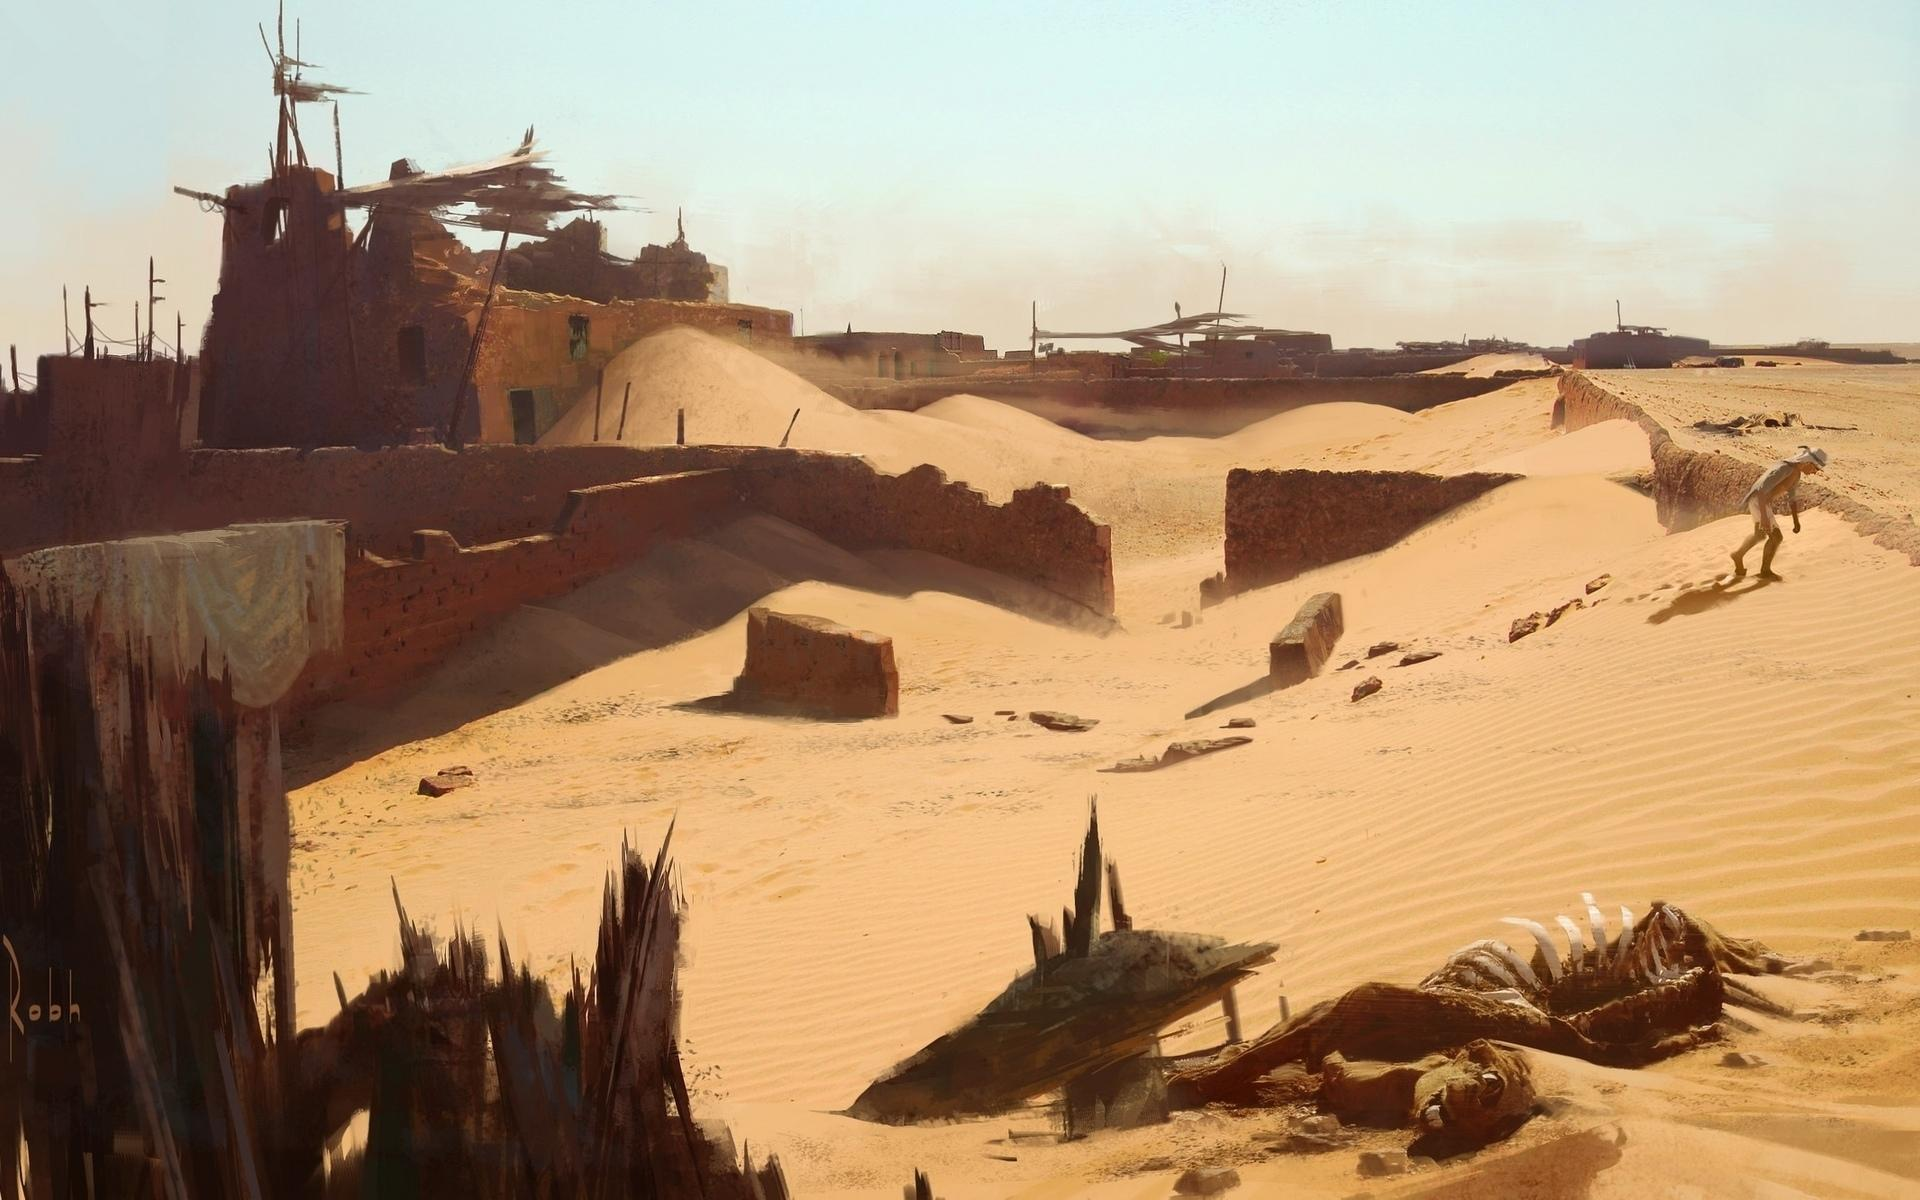 Desert Artistic wallpapers HD quality